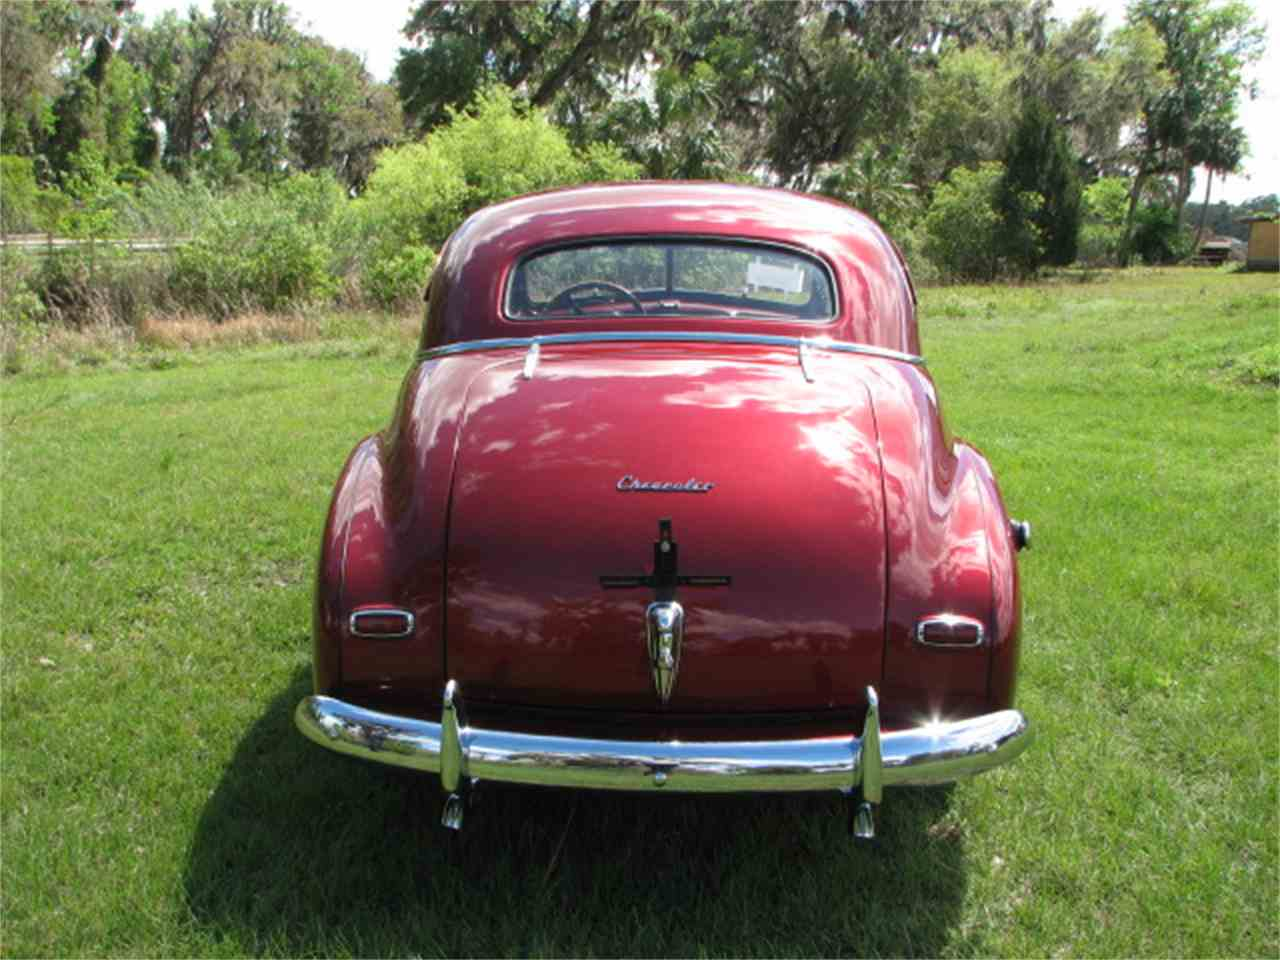 Coupe 1948 chevy stylemaster coupe for sale : 1948 Chevrolet Stylemaster for Sale | ClassicCars.com | CC-1012010